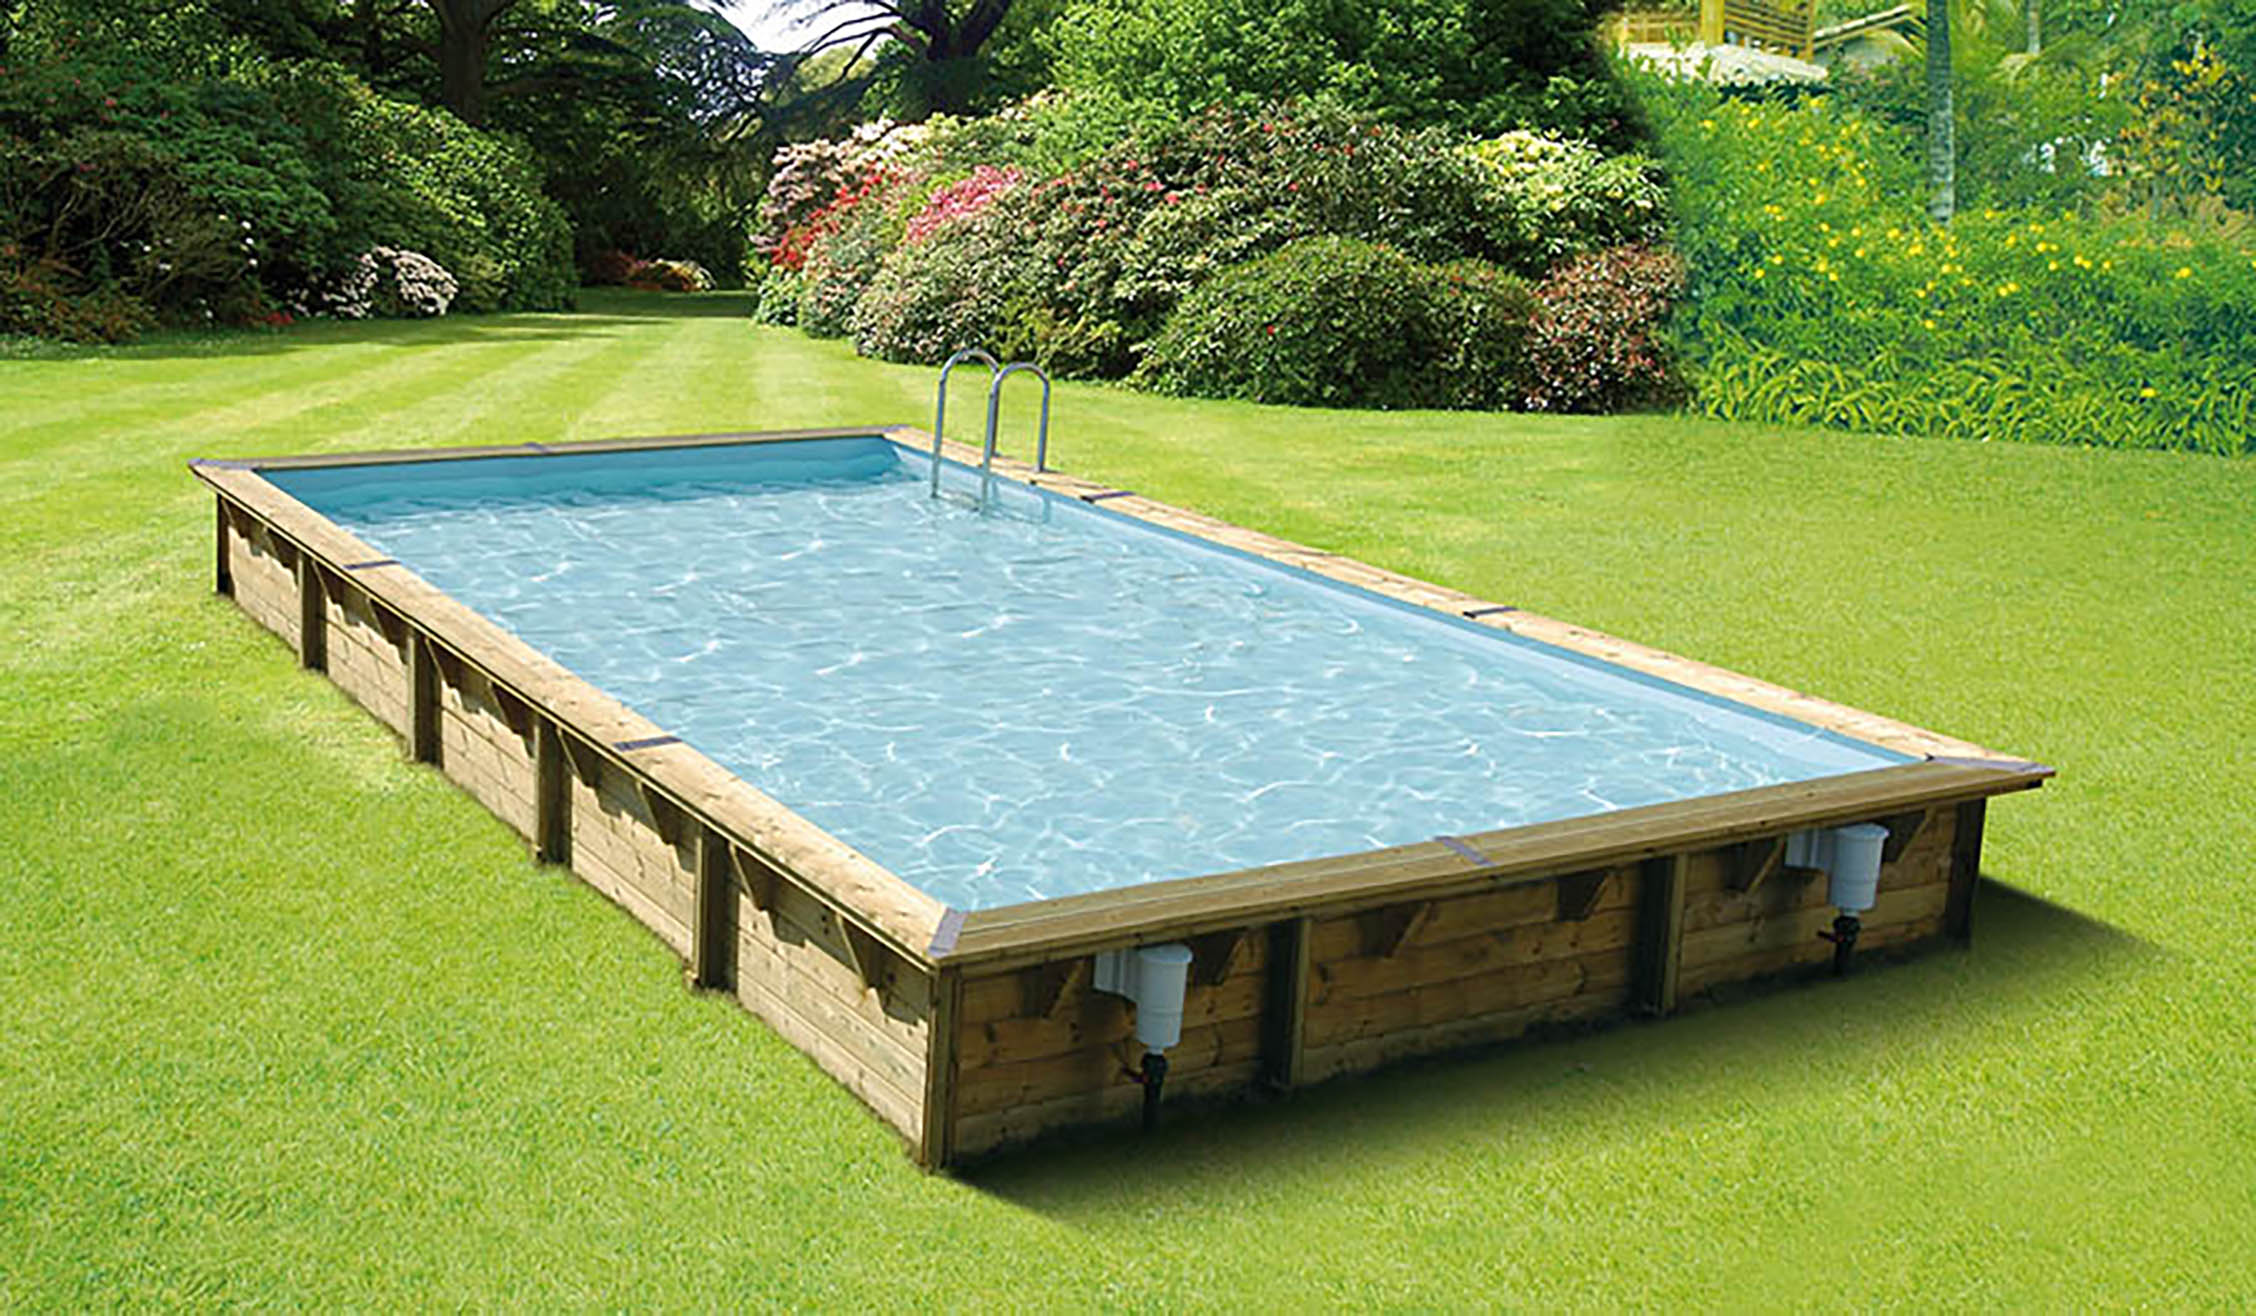 Construction piscines nimes gepad piscines et spa 30000 for Piscine jardin bois